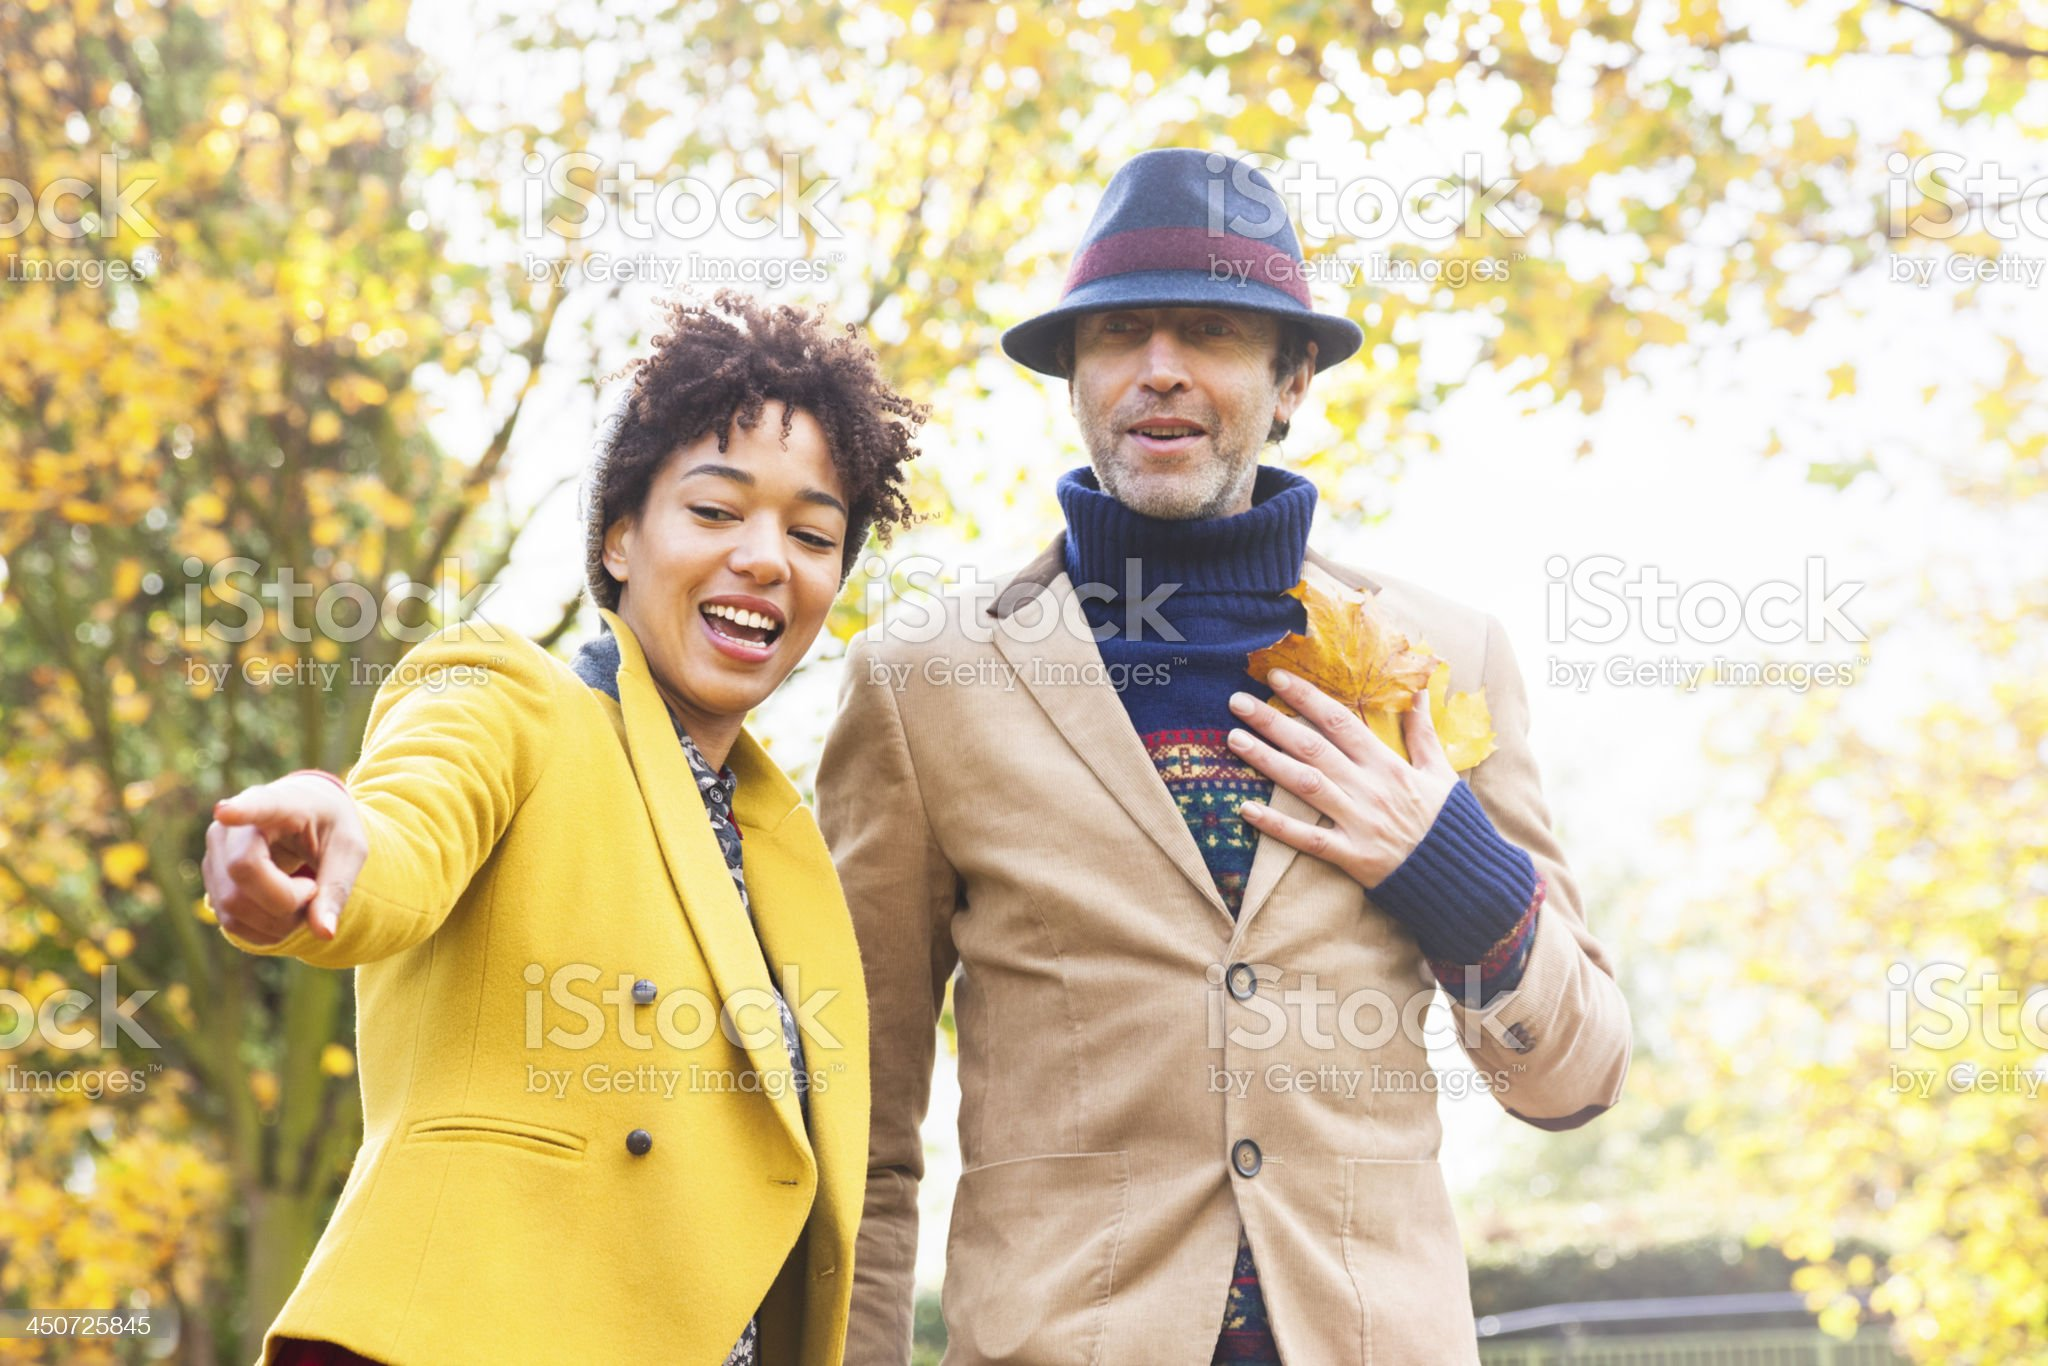 Couple heaving fun in the park royalty-free stock photo